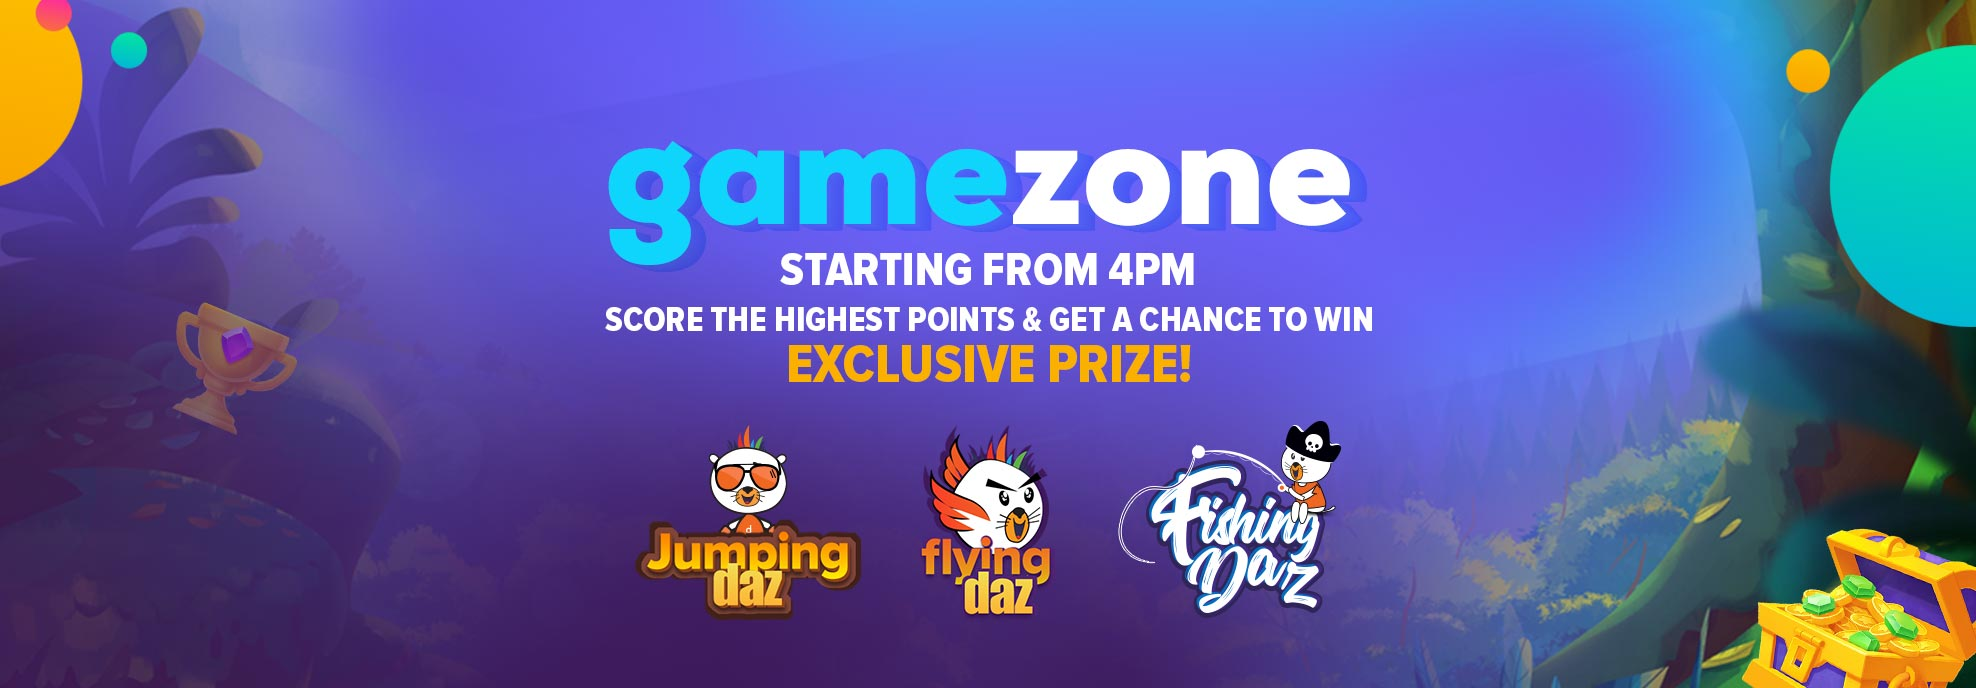 Daraz Game Zone